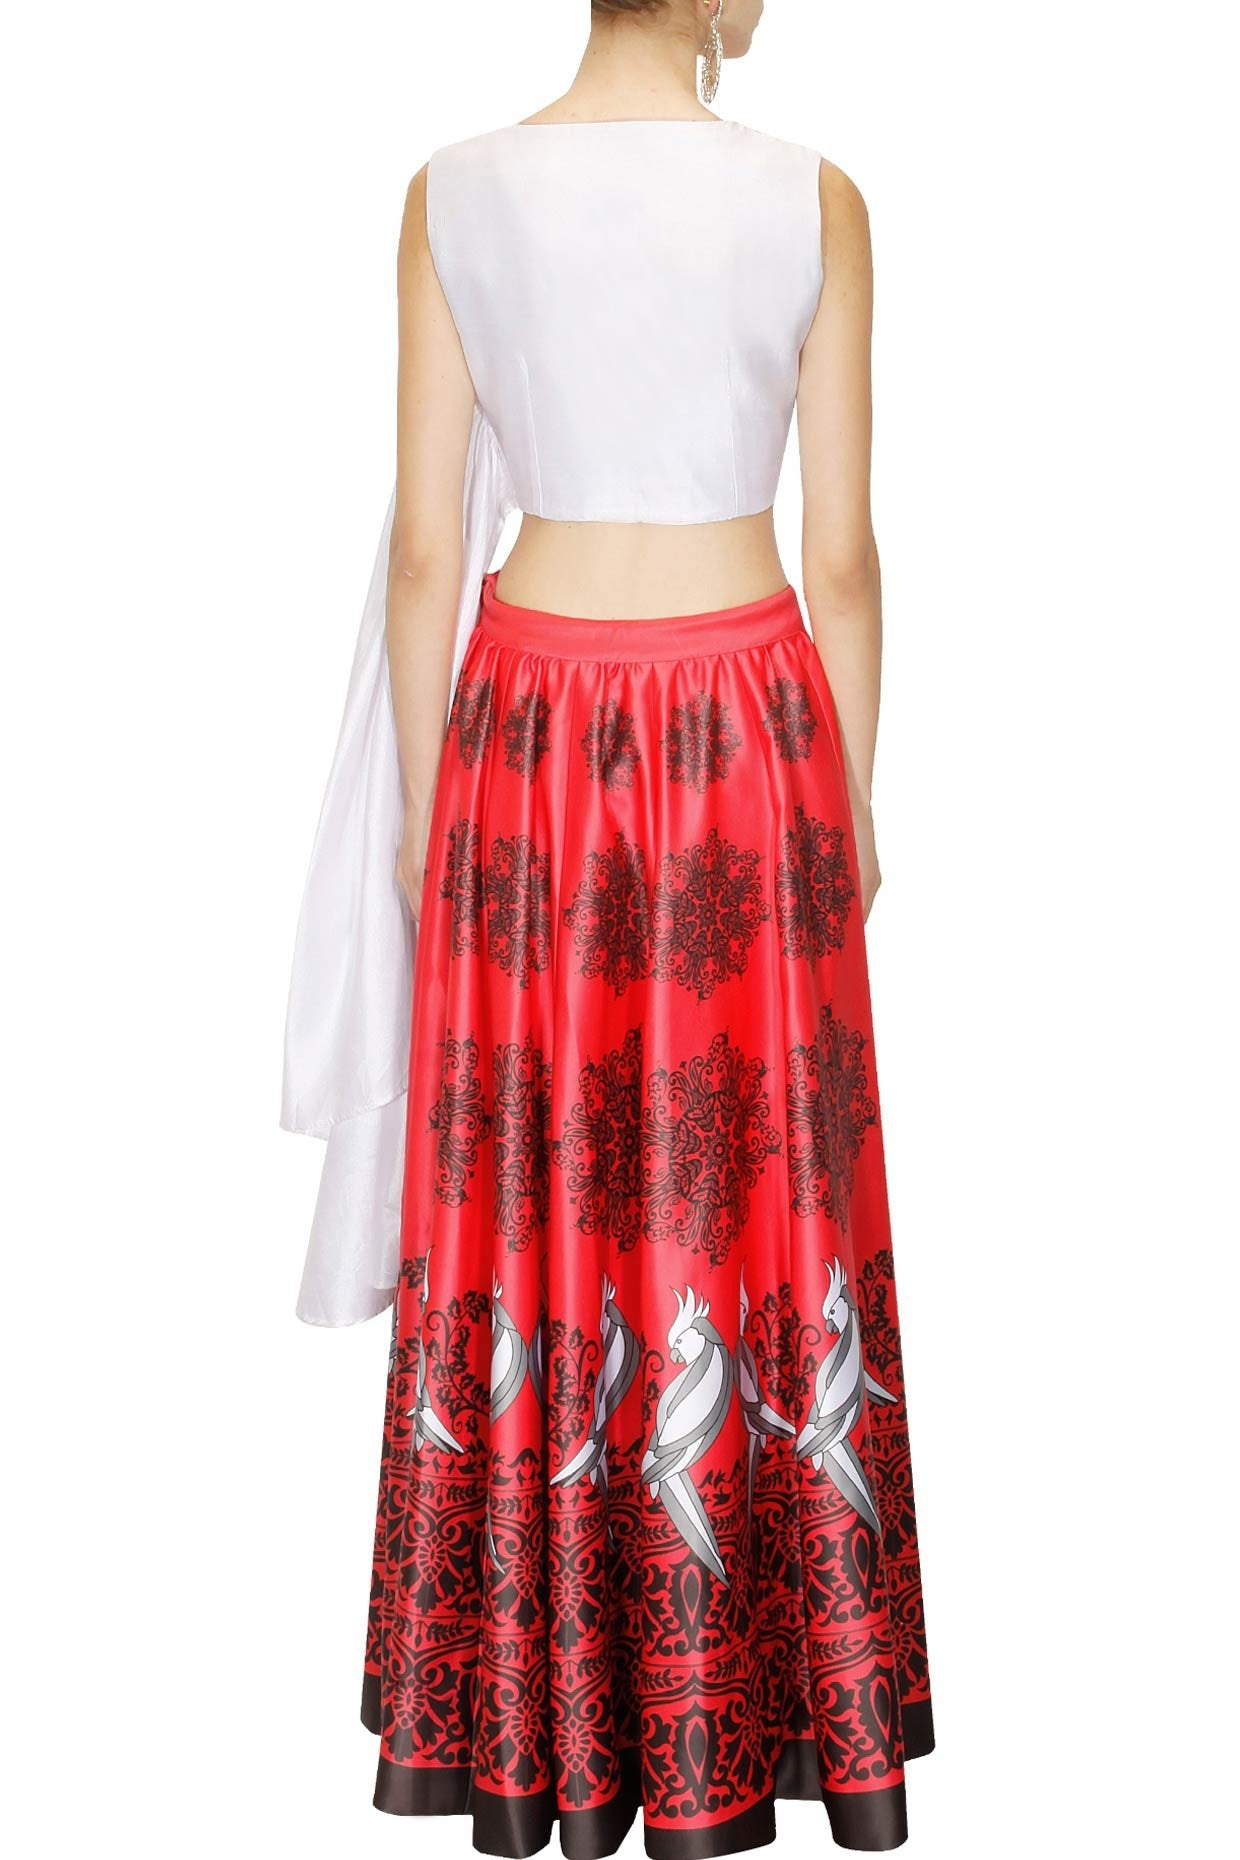 98c2e55c7123be PRINTED SKIRT-TOP SET RED